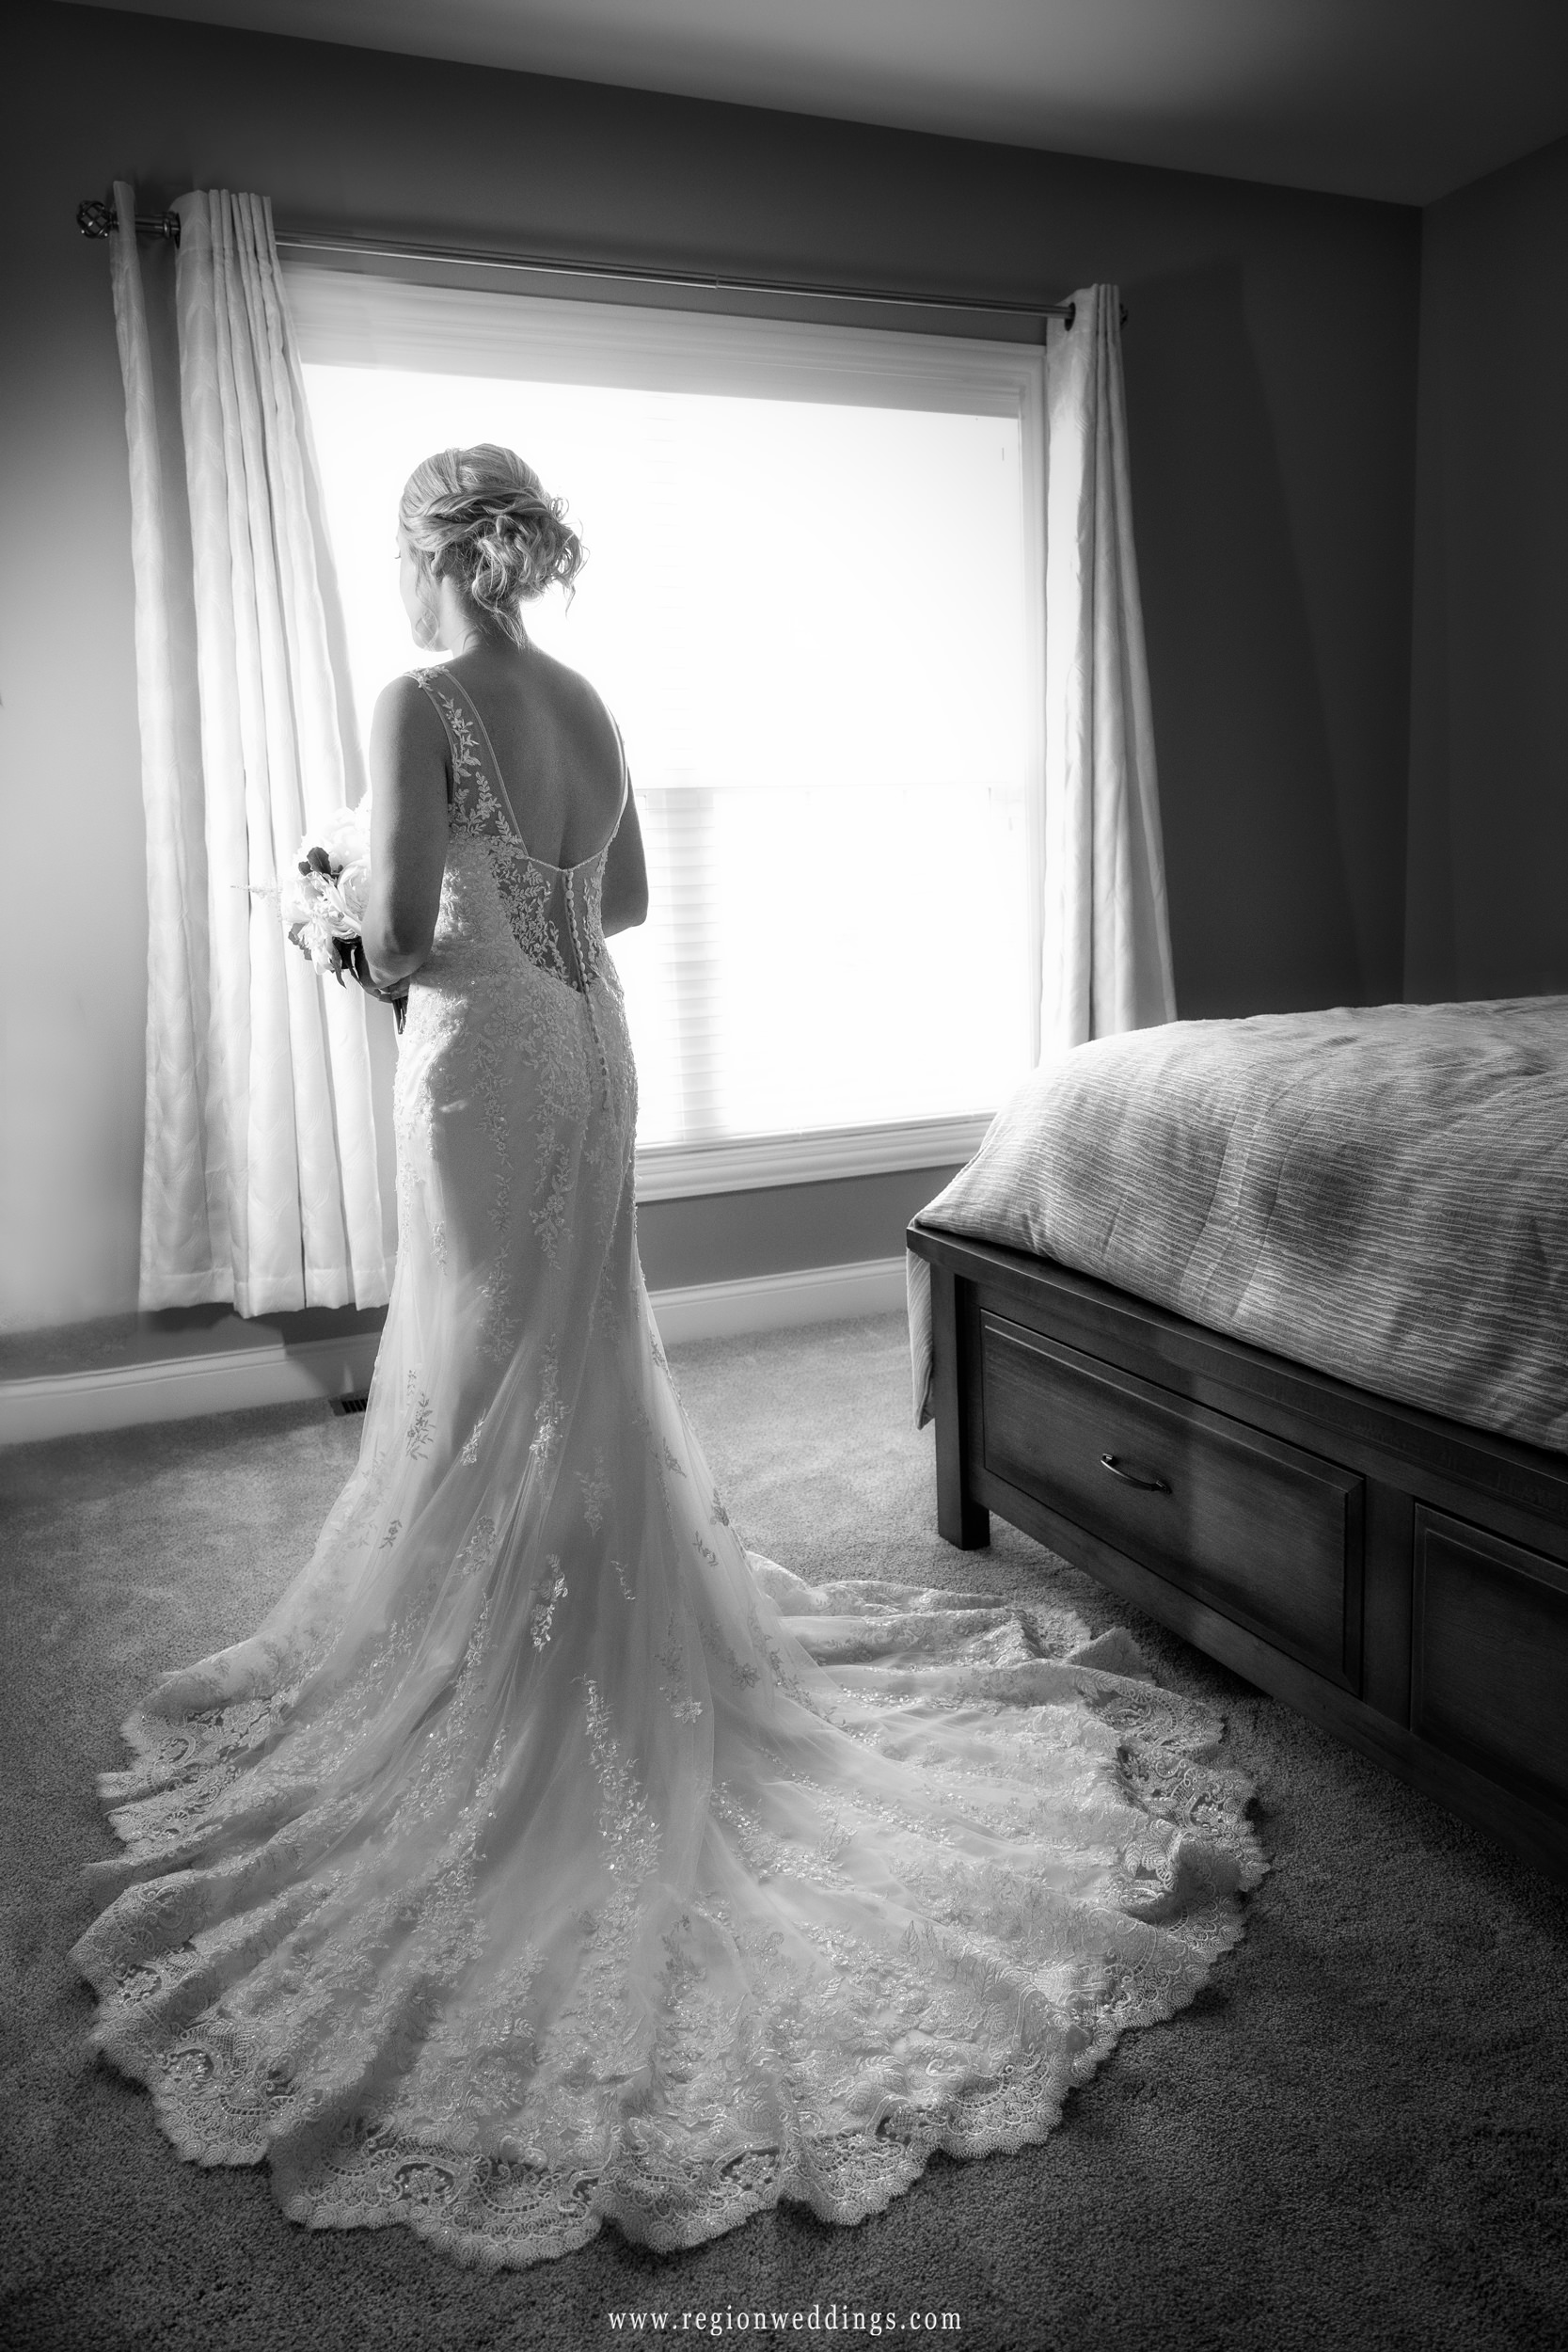 The bride stands alone in her bedroom in her wedding dress.